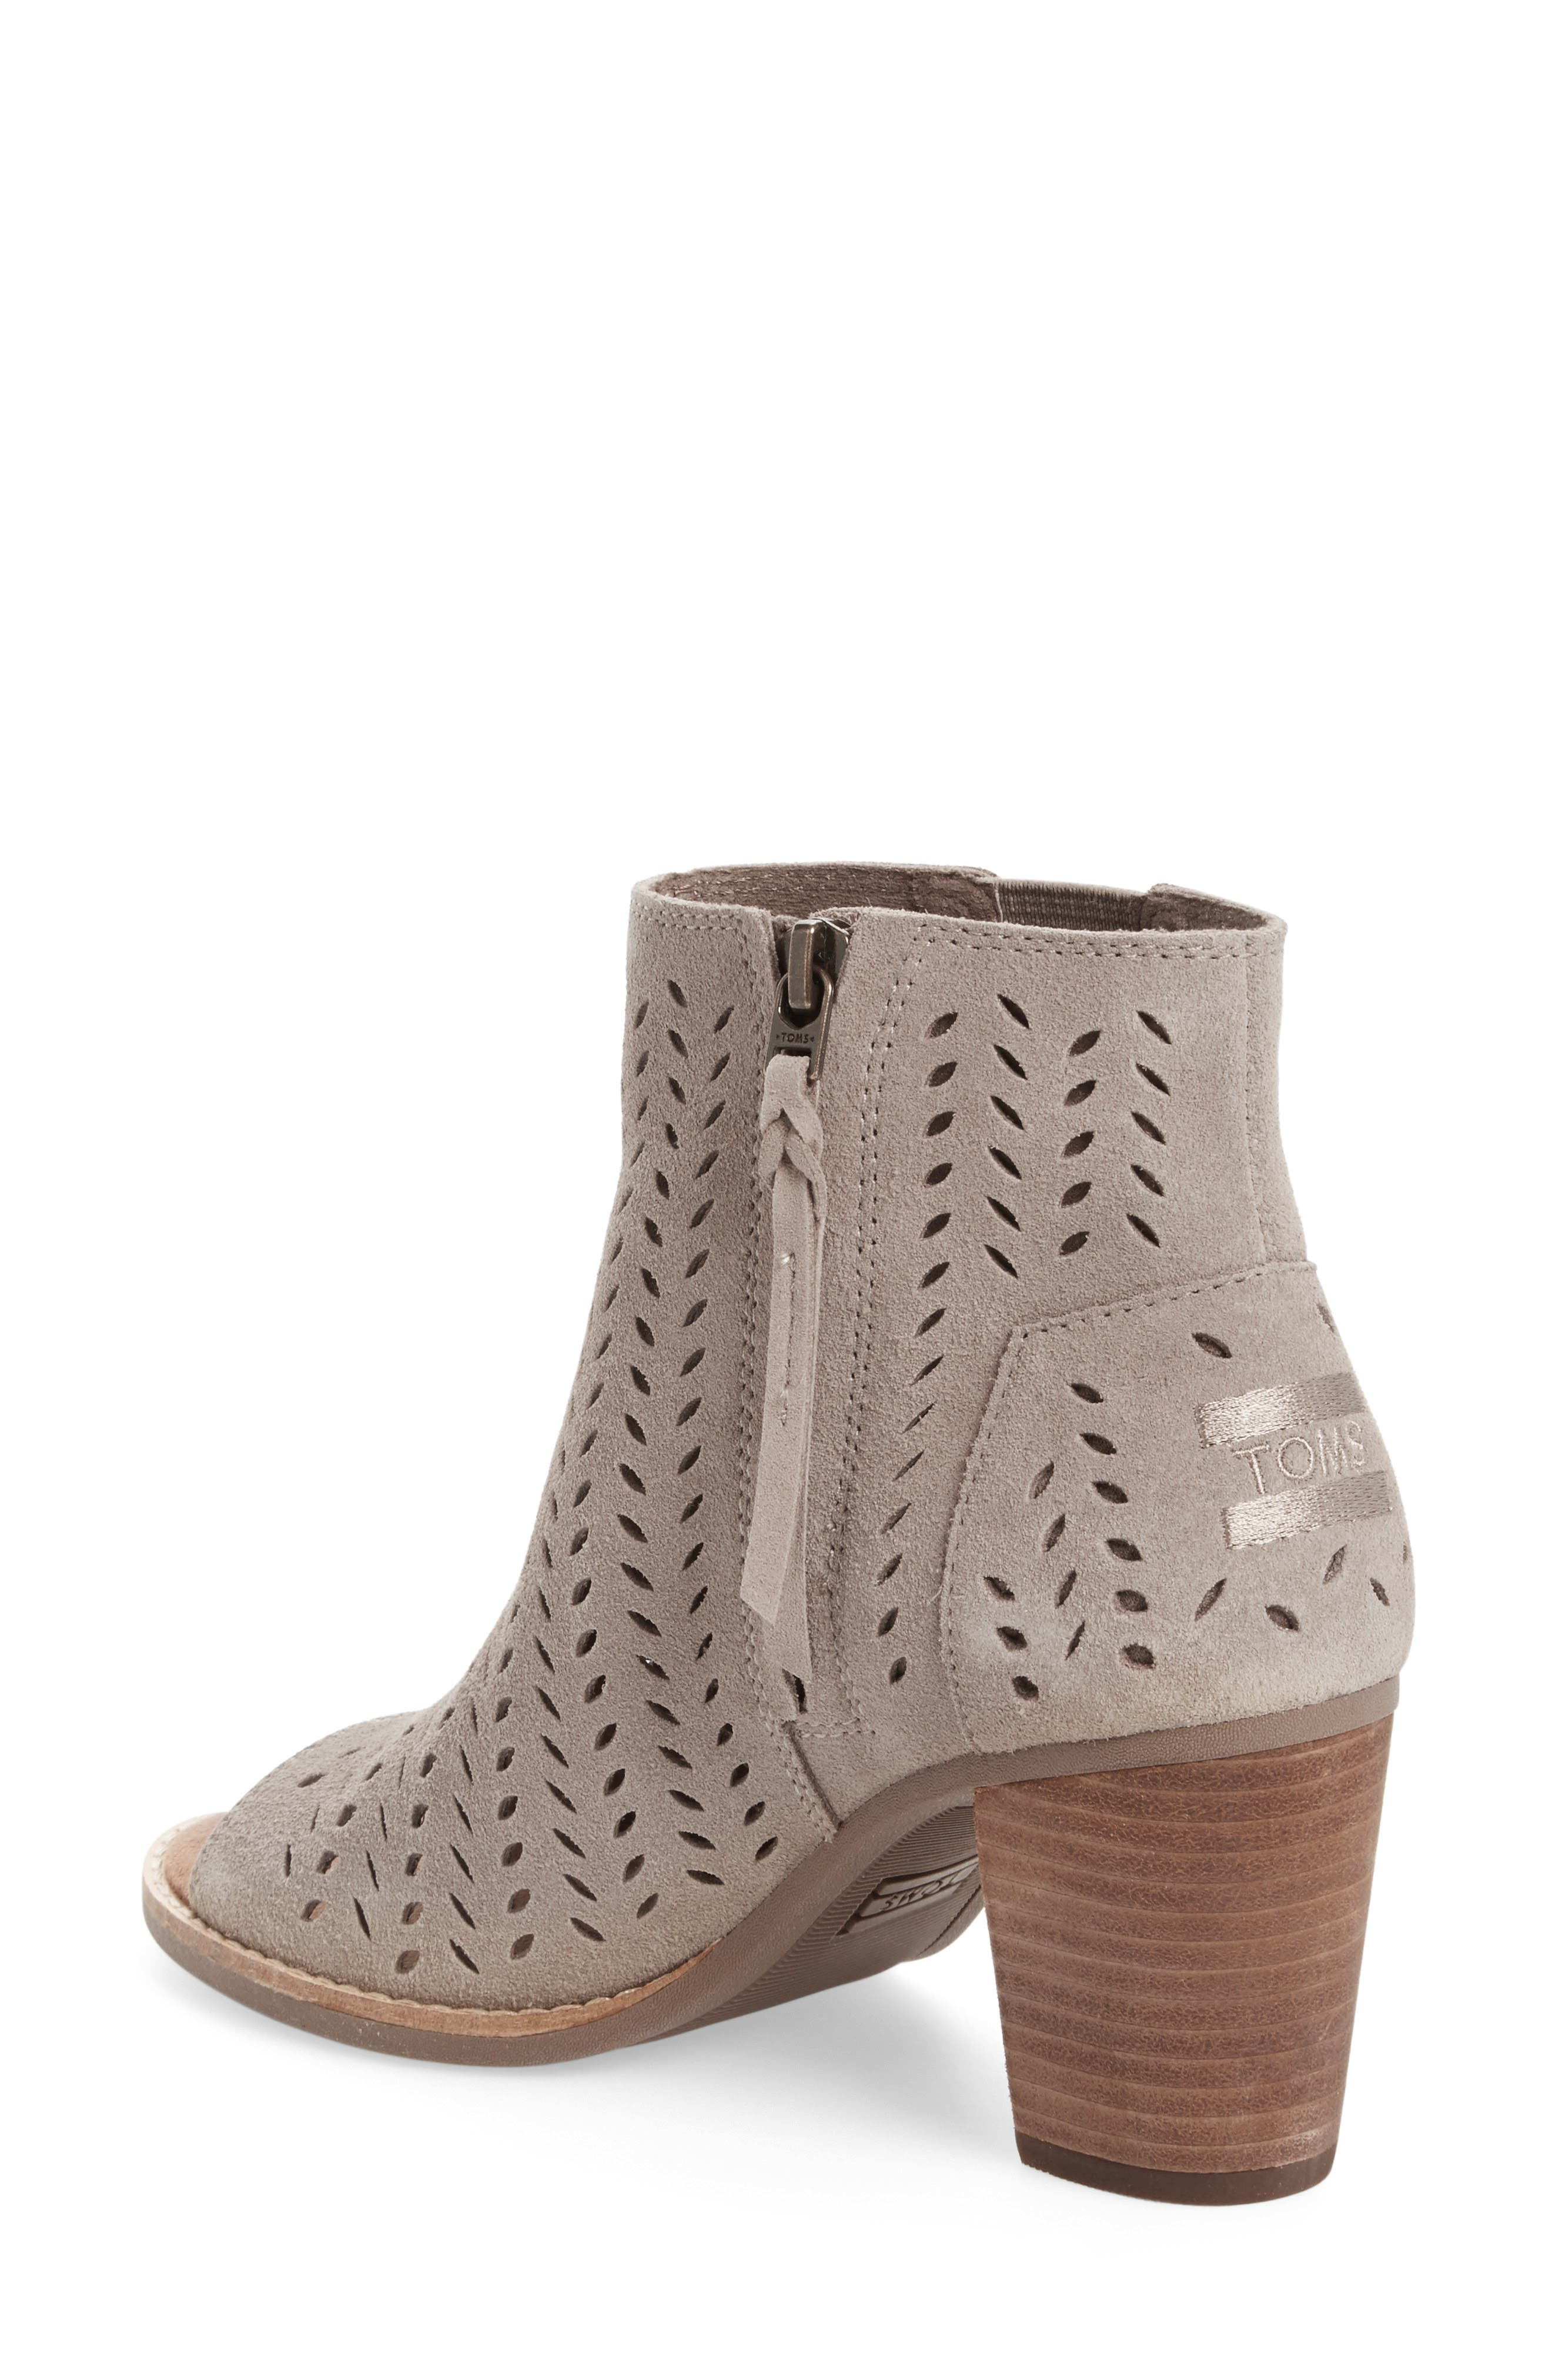 Alternate Image 2  - TOMS Majorca Perforated Suede Bootie (Women)